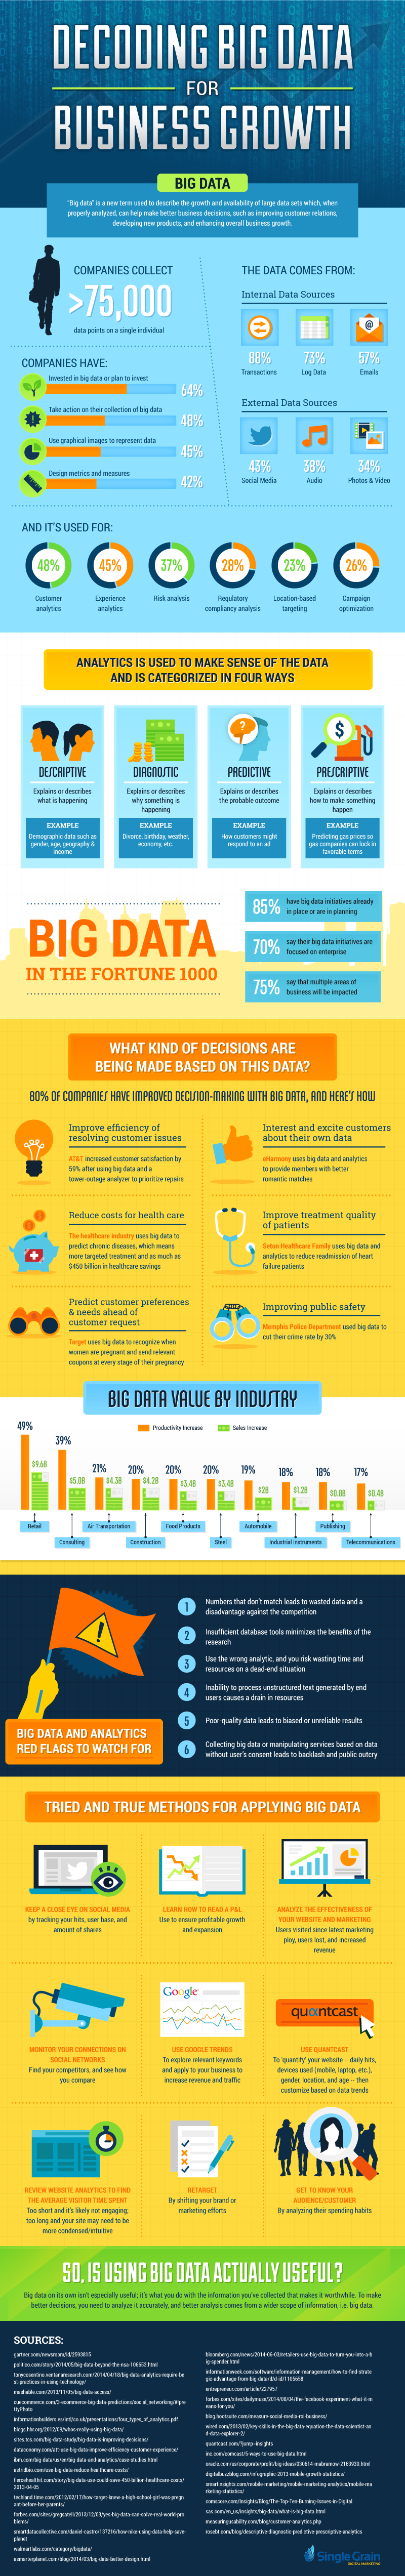 Decoding Big Data for Business Growth #infographic